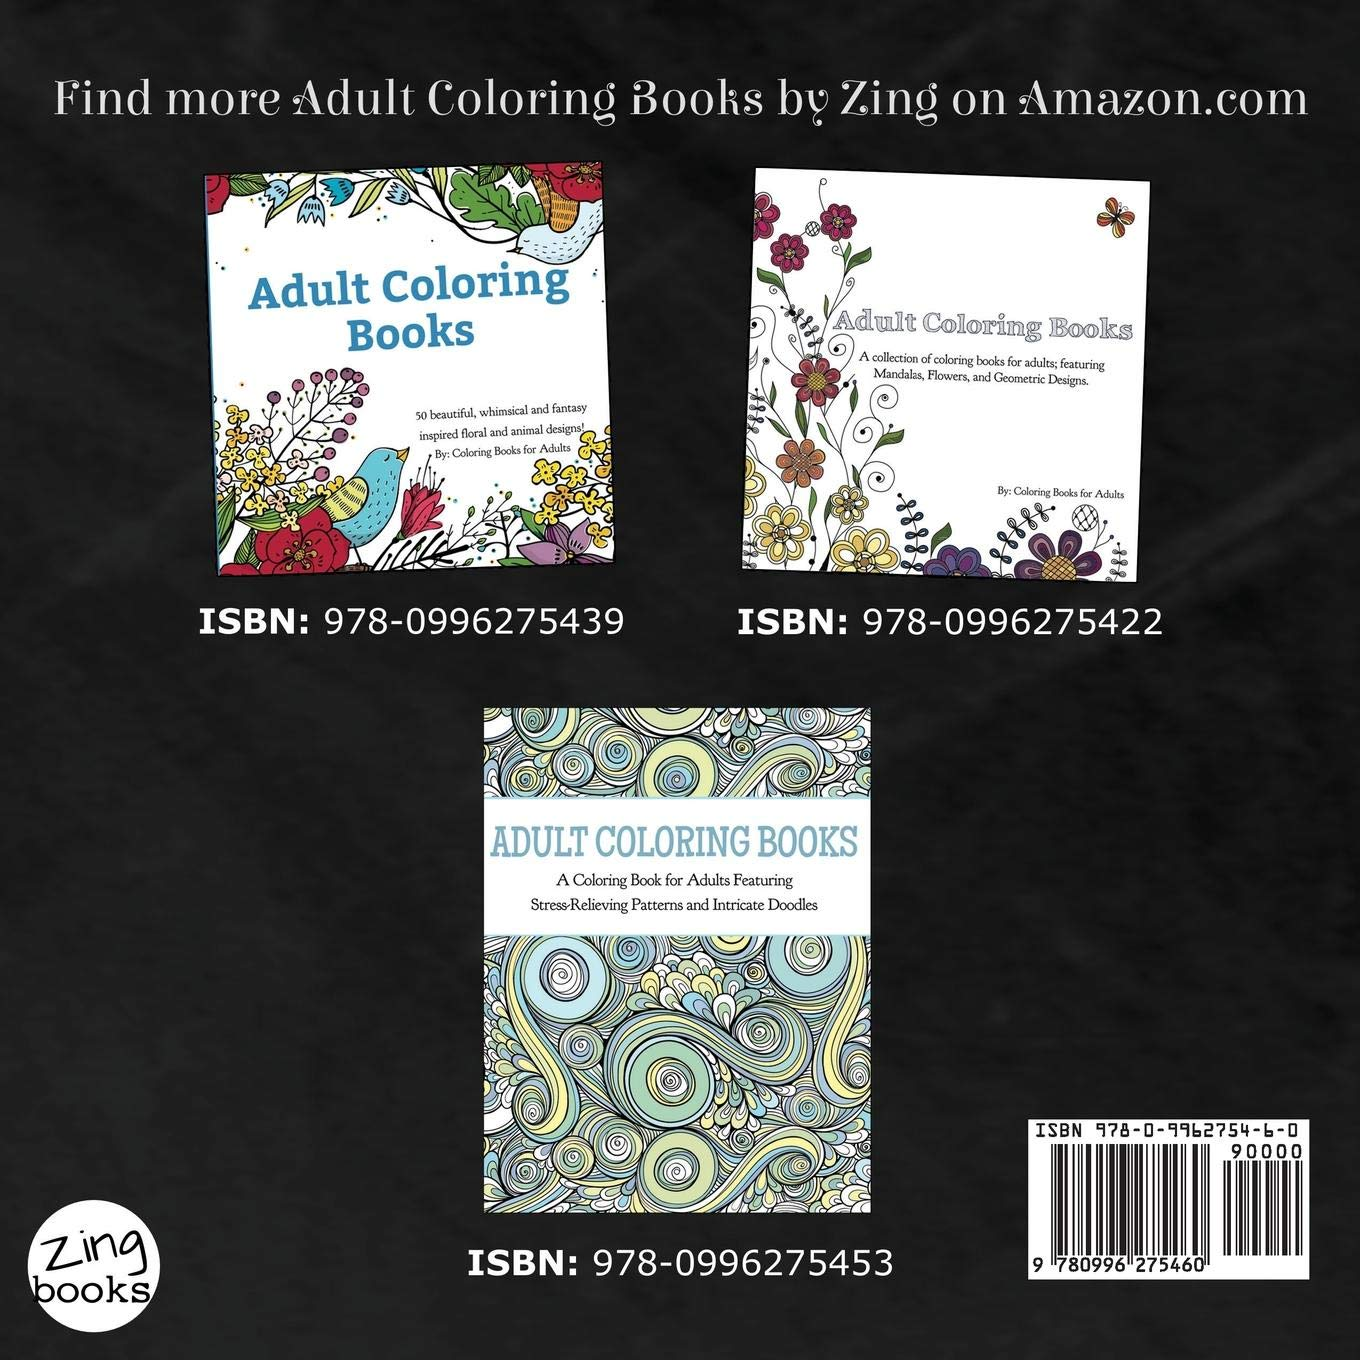 - Amazon.com: Adult Coloring Books: A Coloring Book For Adults